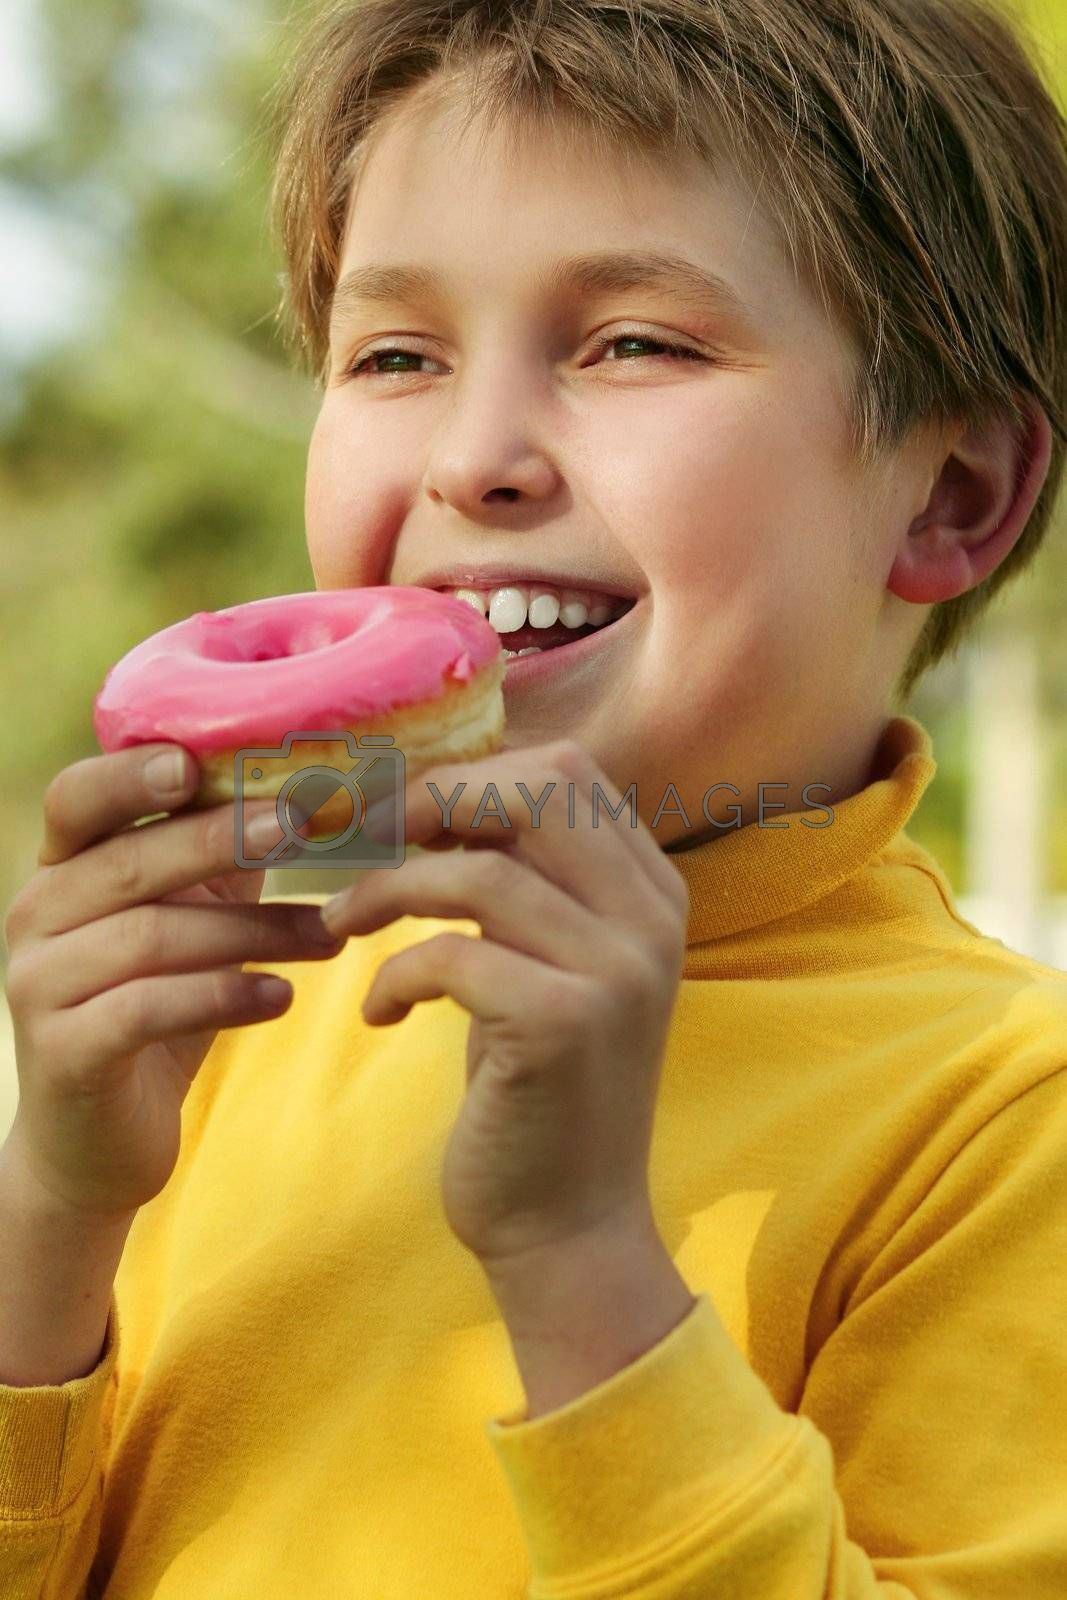 Child eating a pink doughnut by lovleah